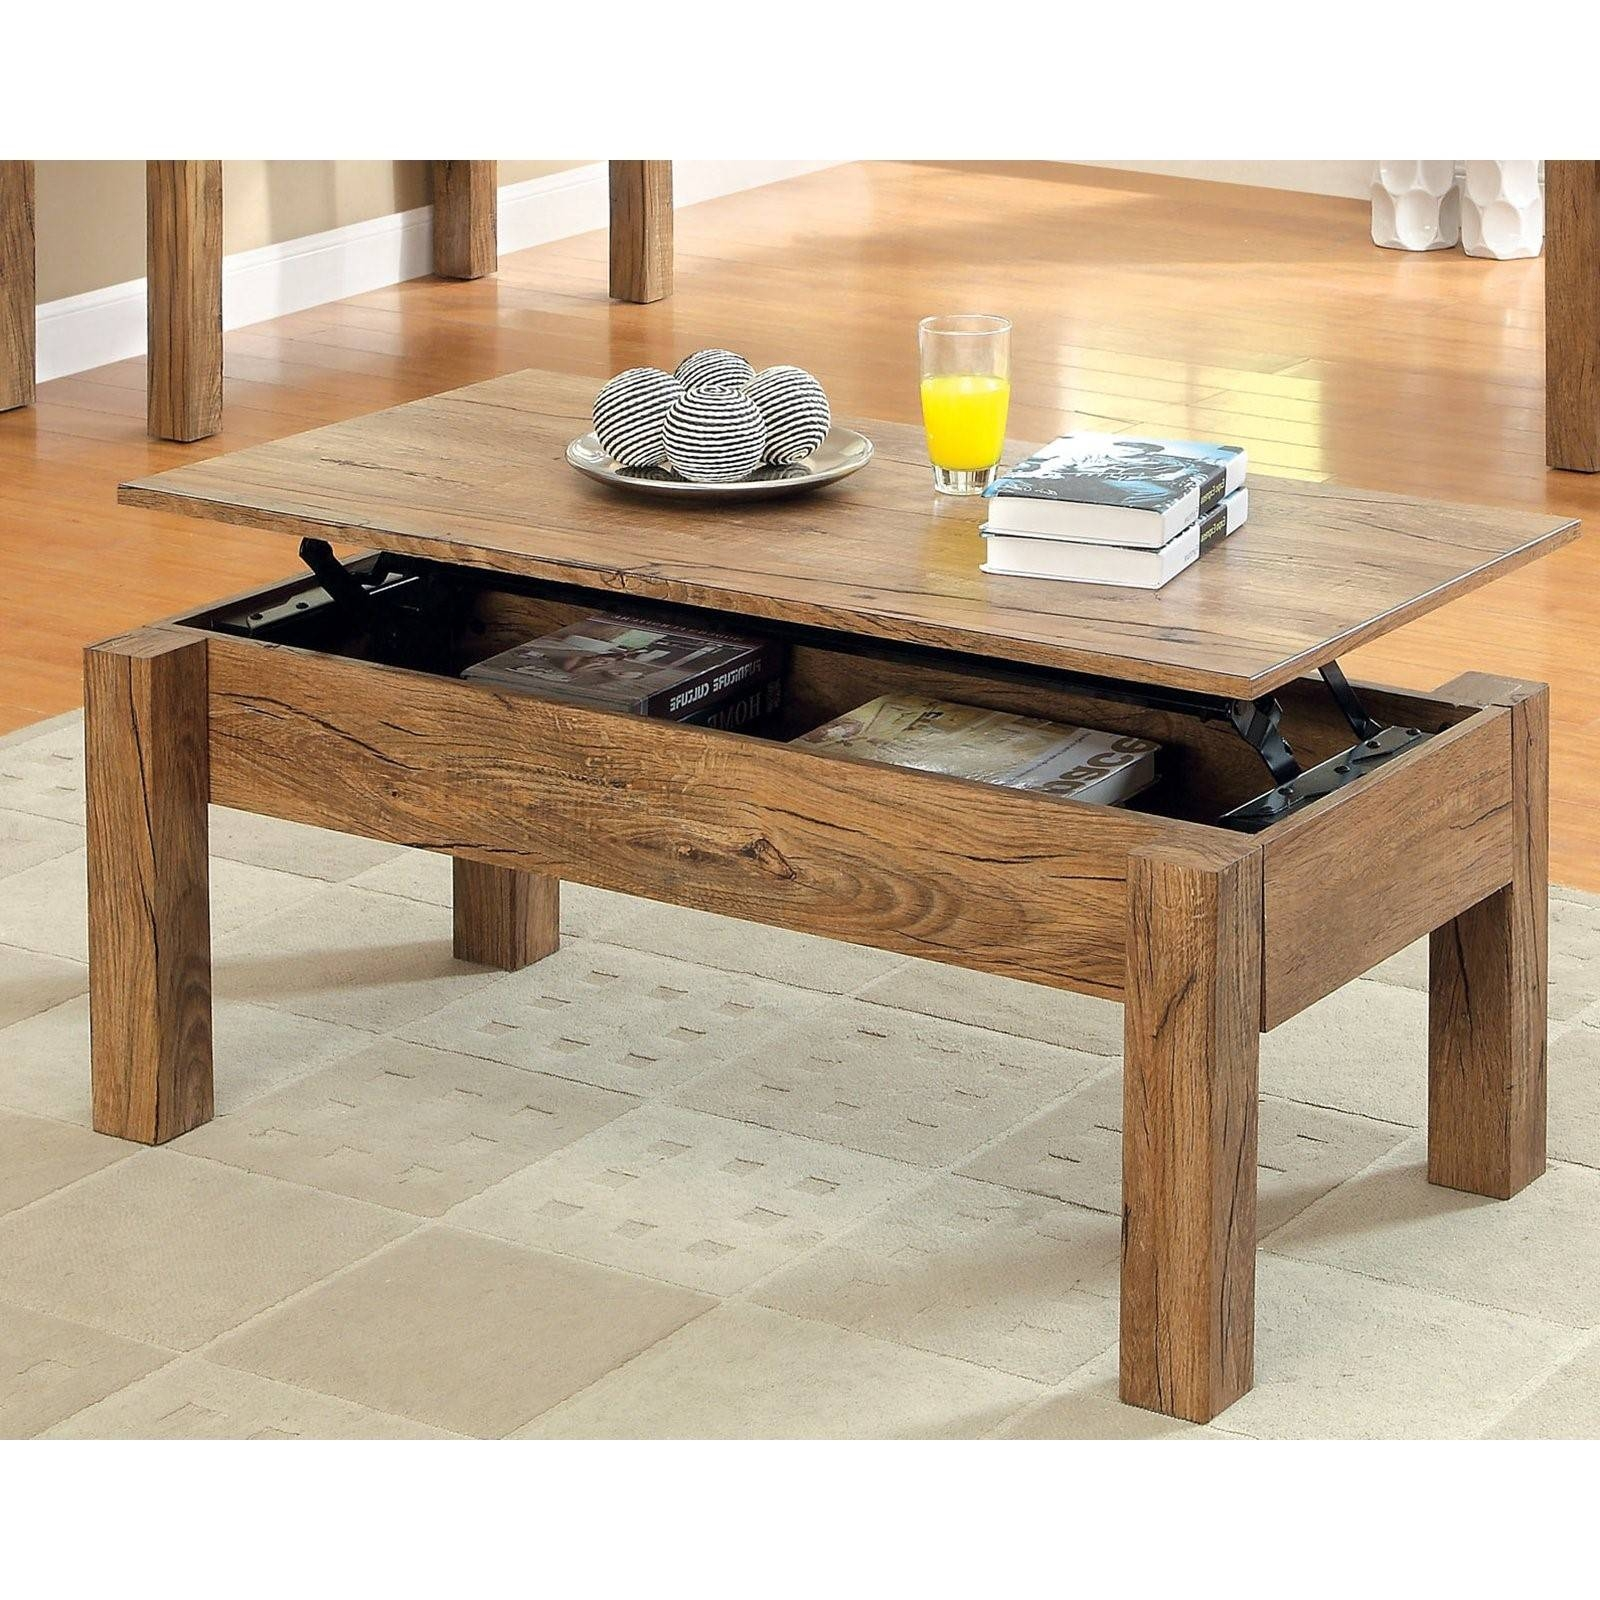 Furniture Extraordinary Rustic Storage Coffee Table Ideas: Brown regarding Wooden Storage Coffee Tables (Image 9 of 30)